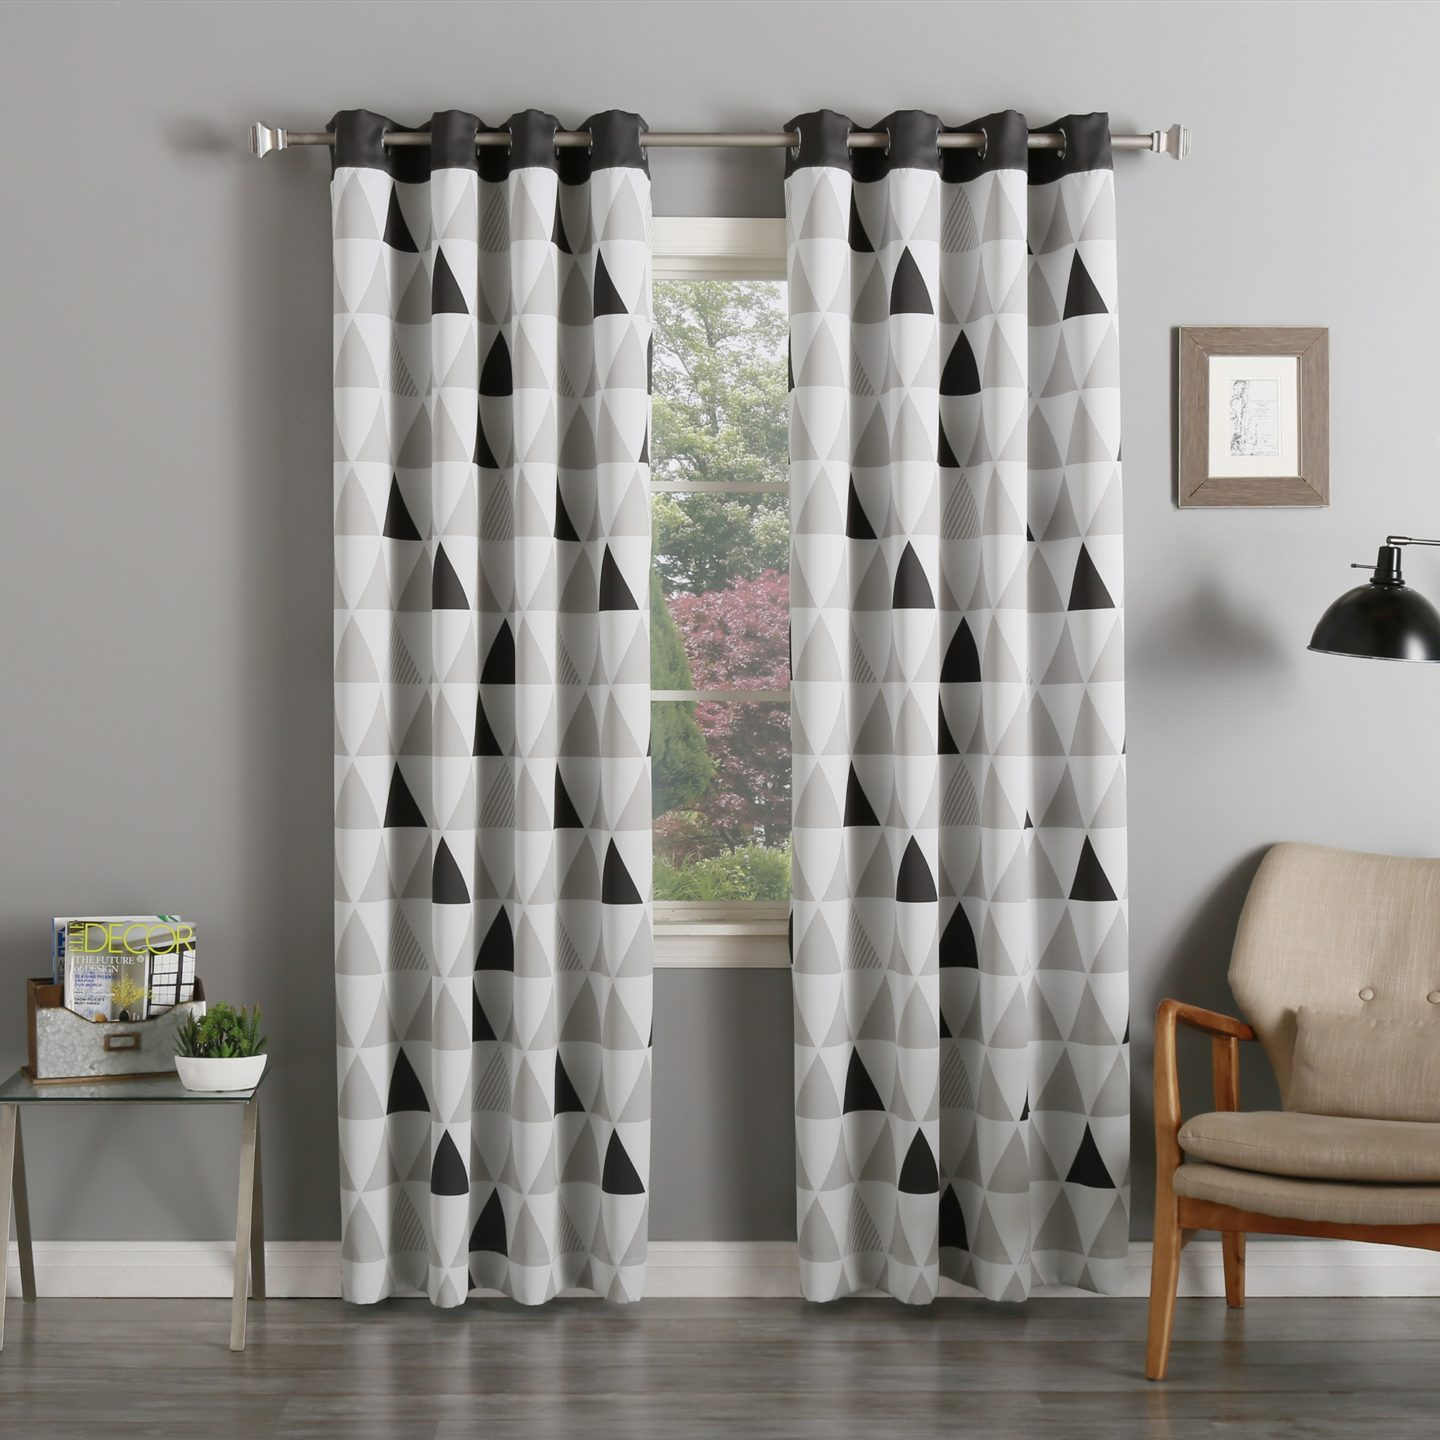 Faqs About Thermal Insulated Curtains Overstockcom